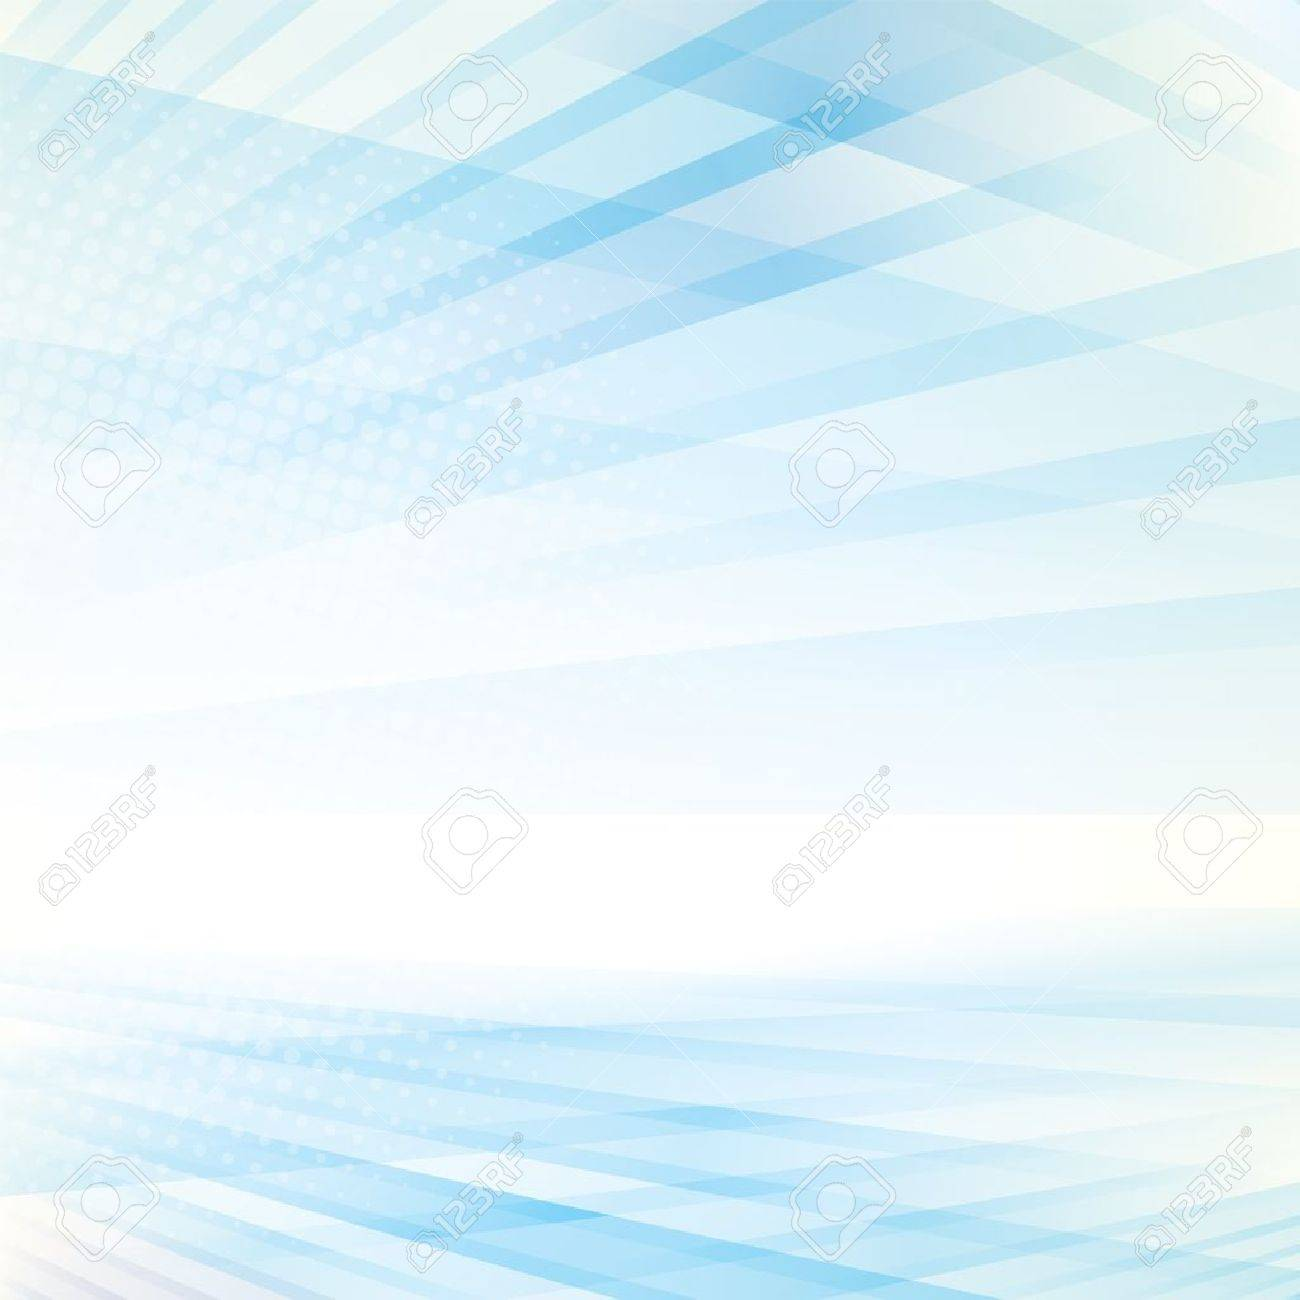 Abstract smooth light blue perspective background. Stock Vector - 18987082